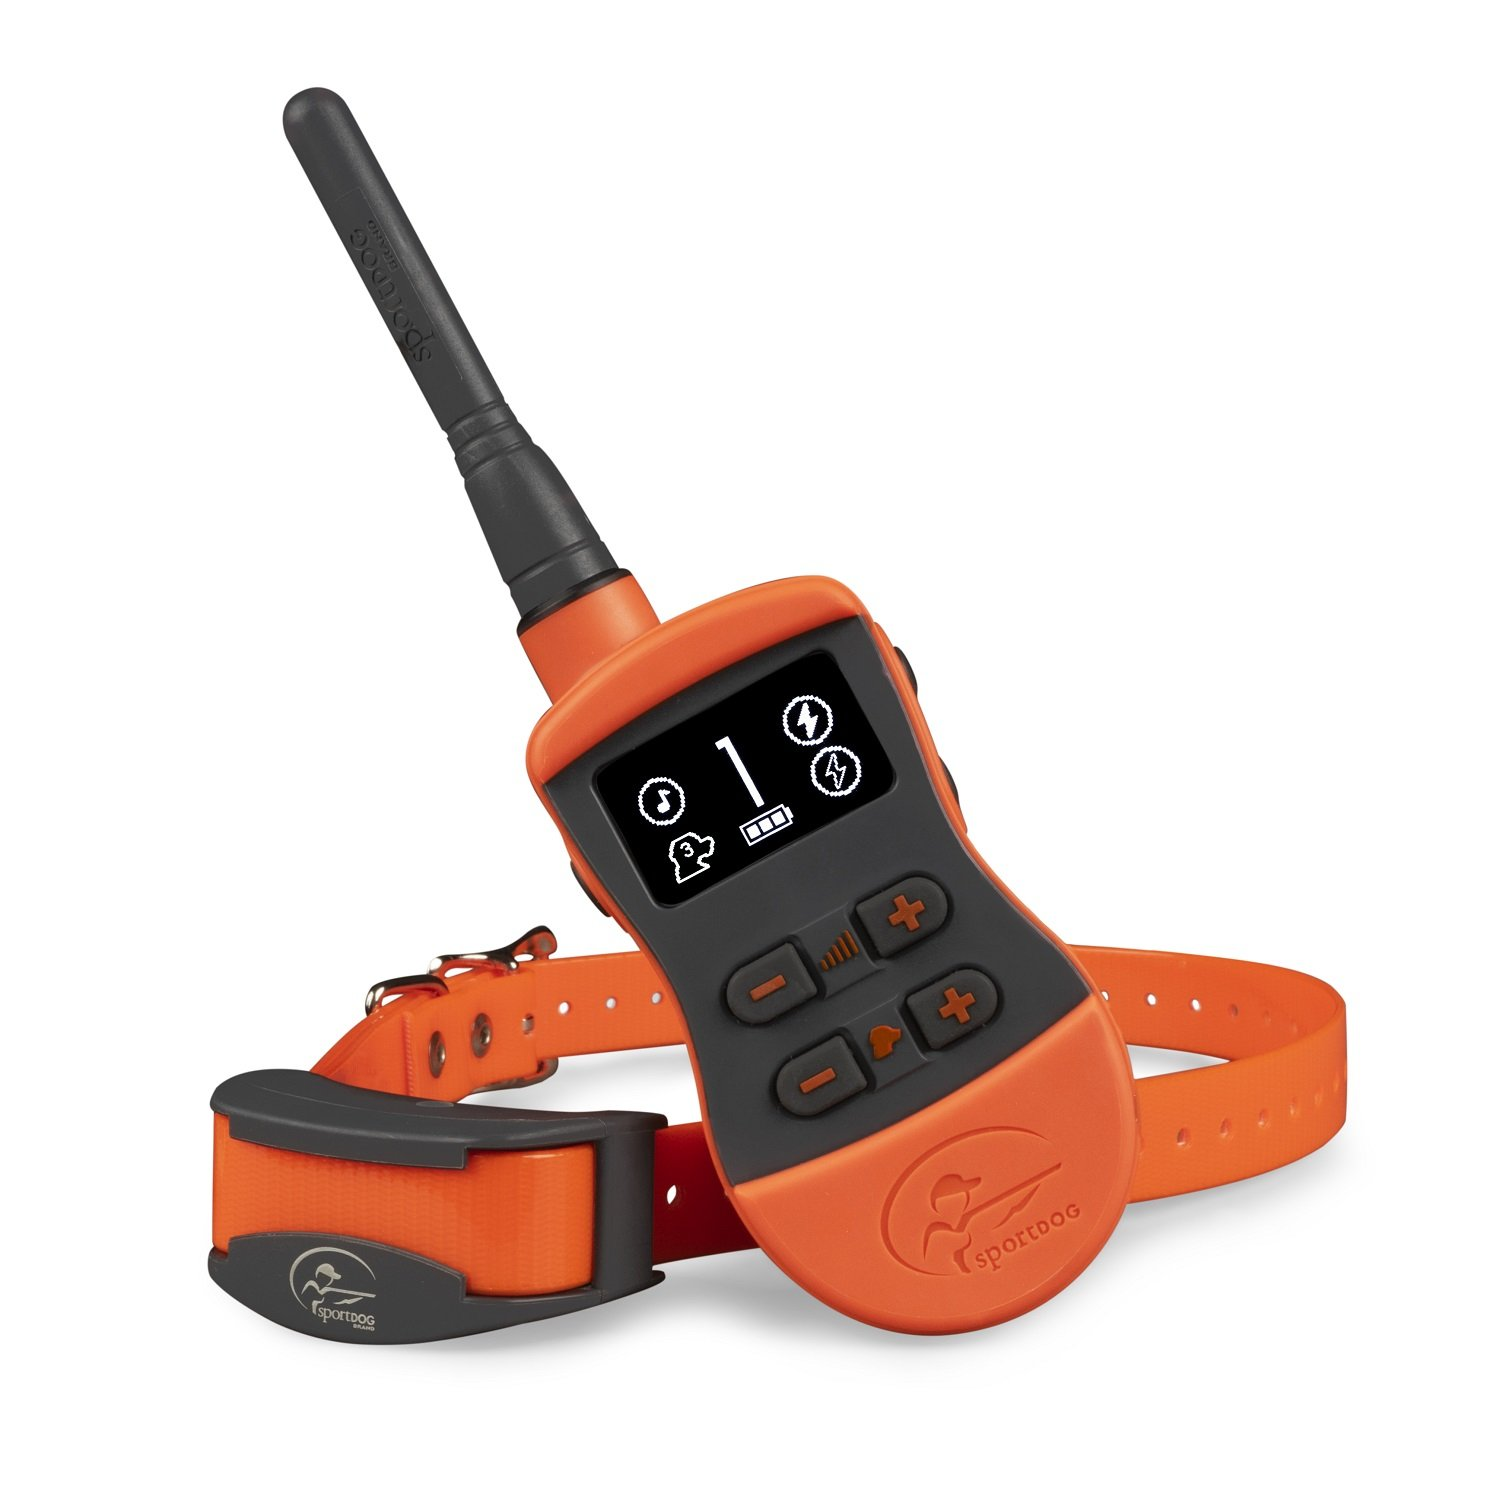 SportDOG Brand SportTrainer Remote Trainers - Bright, Easy to Read OLED Screen - Up to 3/4 Mile Range - Waterproof, Rechargeable Dog Training Collar with Tone, Vibration, and Shock by SportDOG Brand